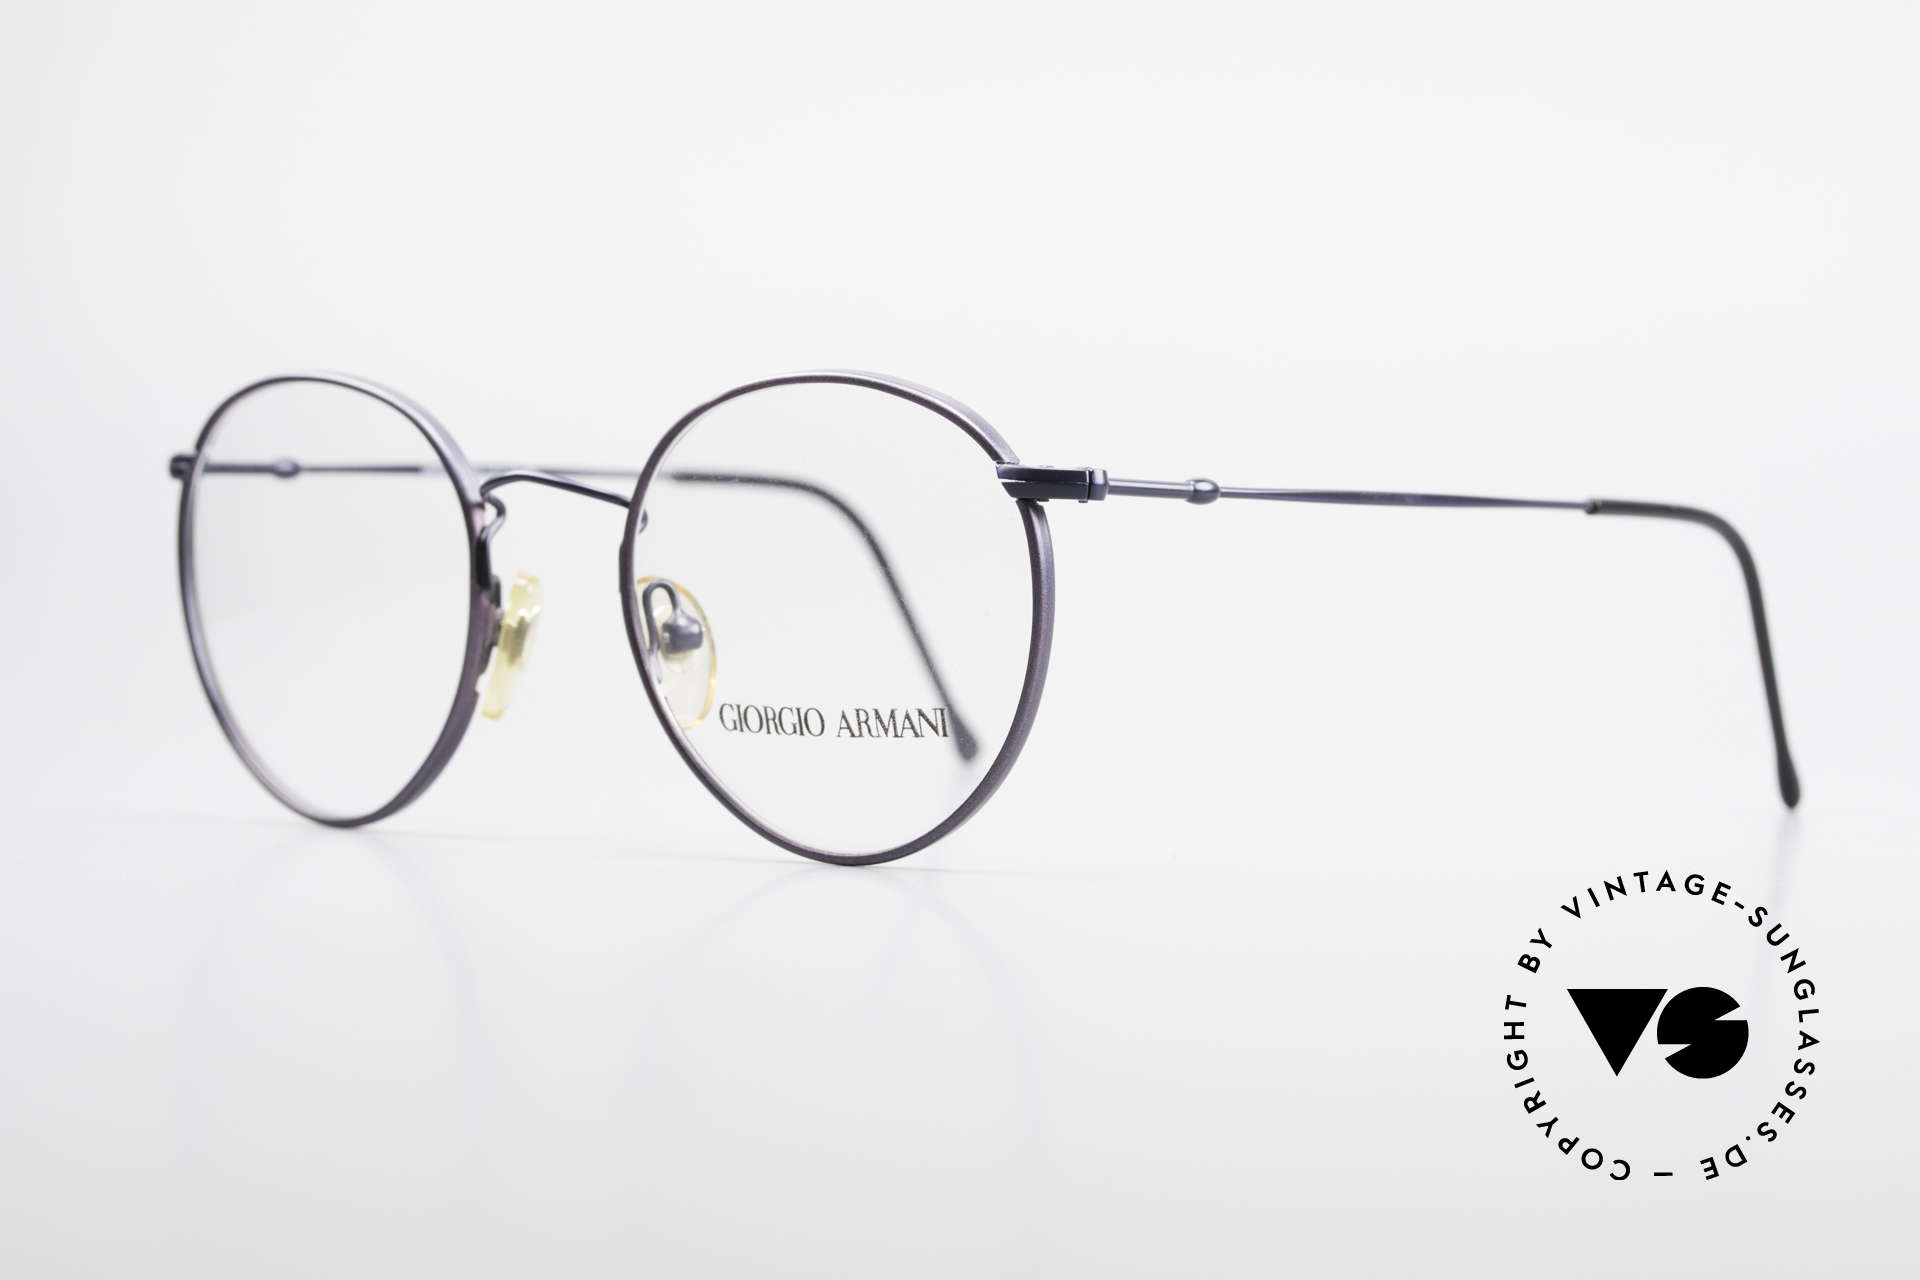 Giorgio Armani 253 Panto Vintage Frame Classic, terrific frame finish in a kind of dark BLUE metallic, Made for Men